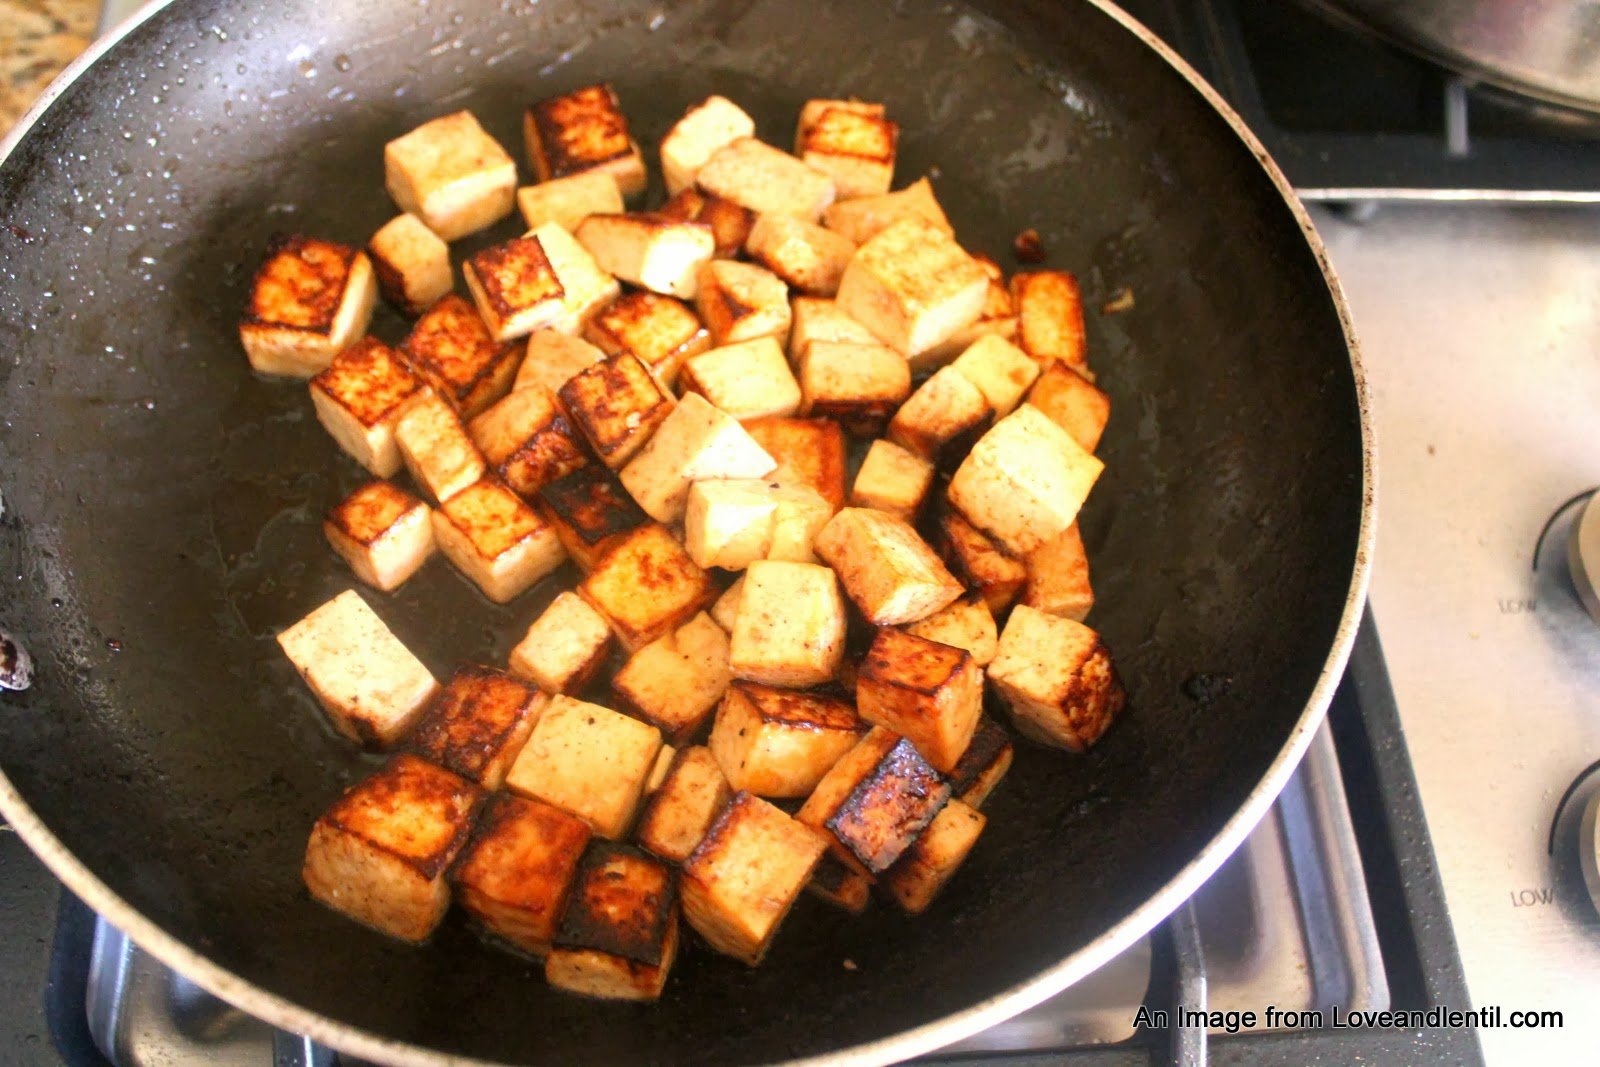 Add the tofu to the veggies and stir in well.